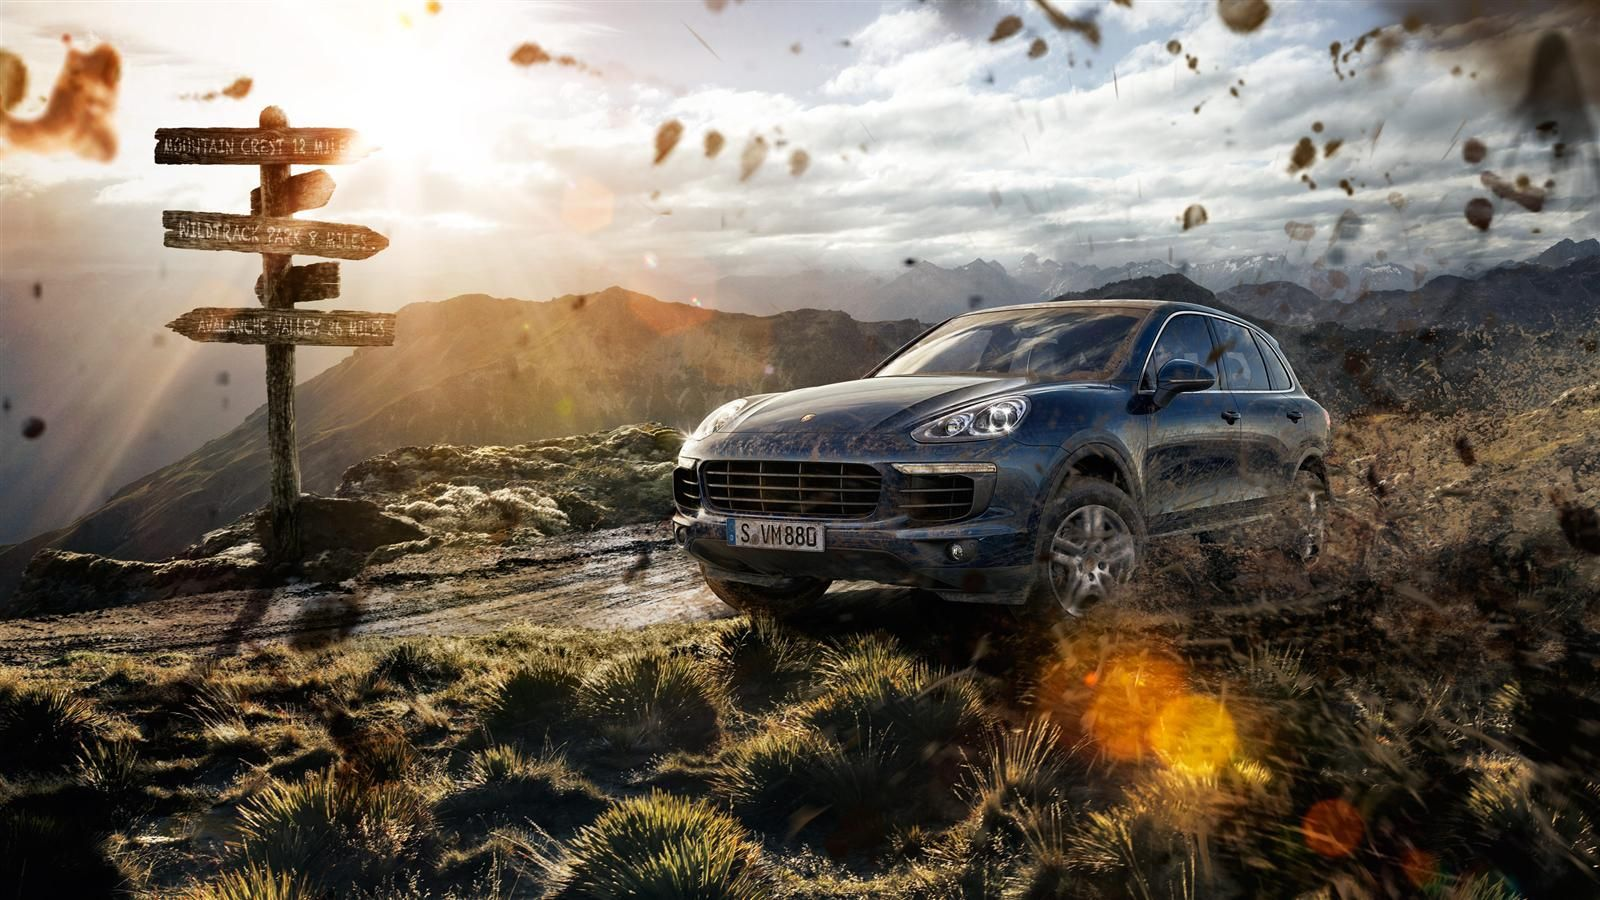 The 2015 Porsche Cayenne S E-Hybrid turbo